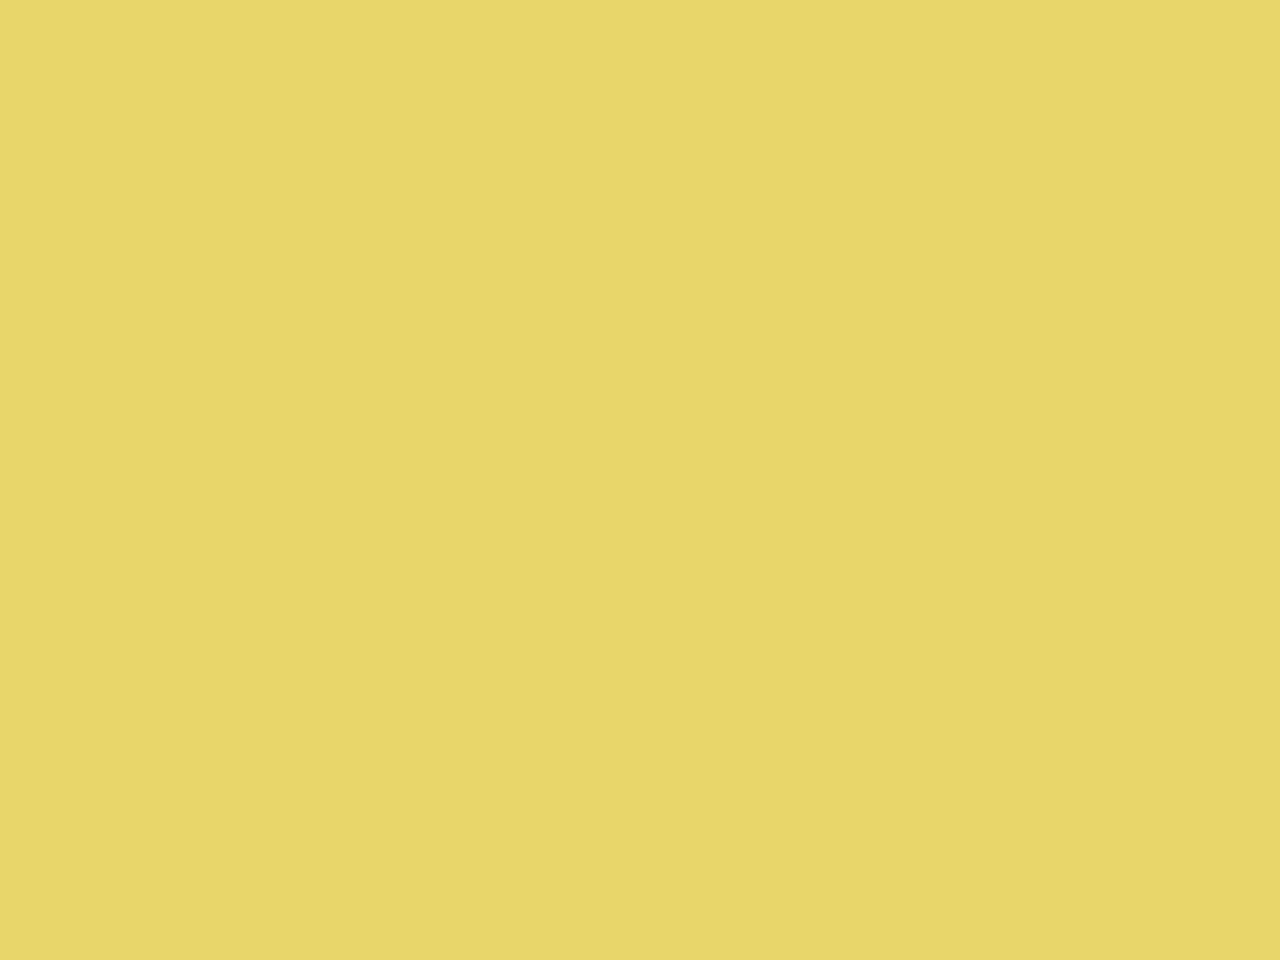 1280x960 Arylide Yellow Solid Color Background